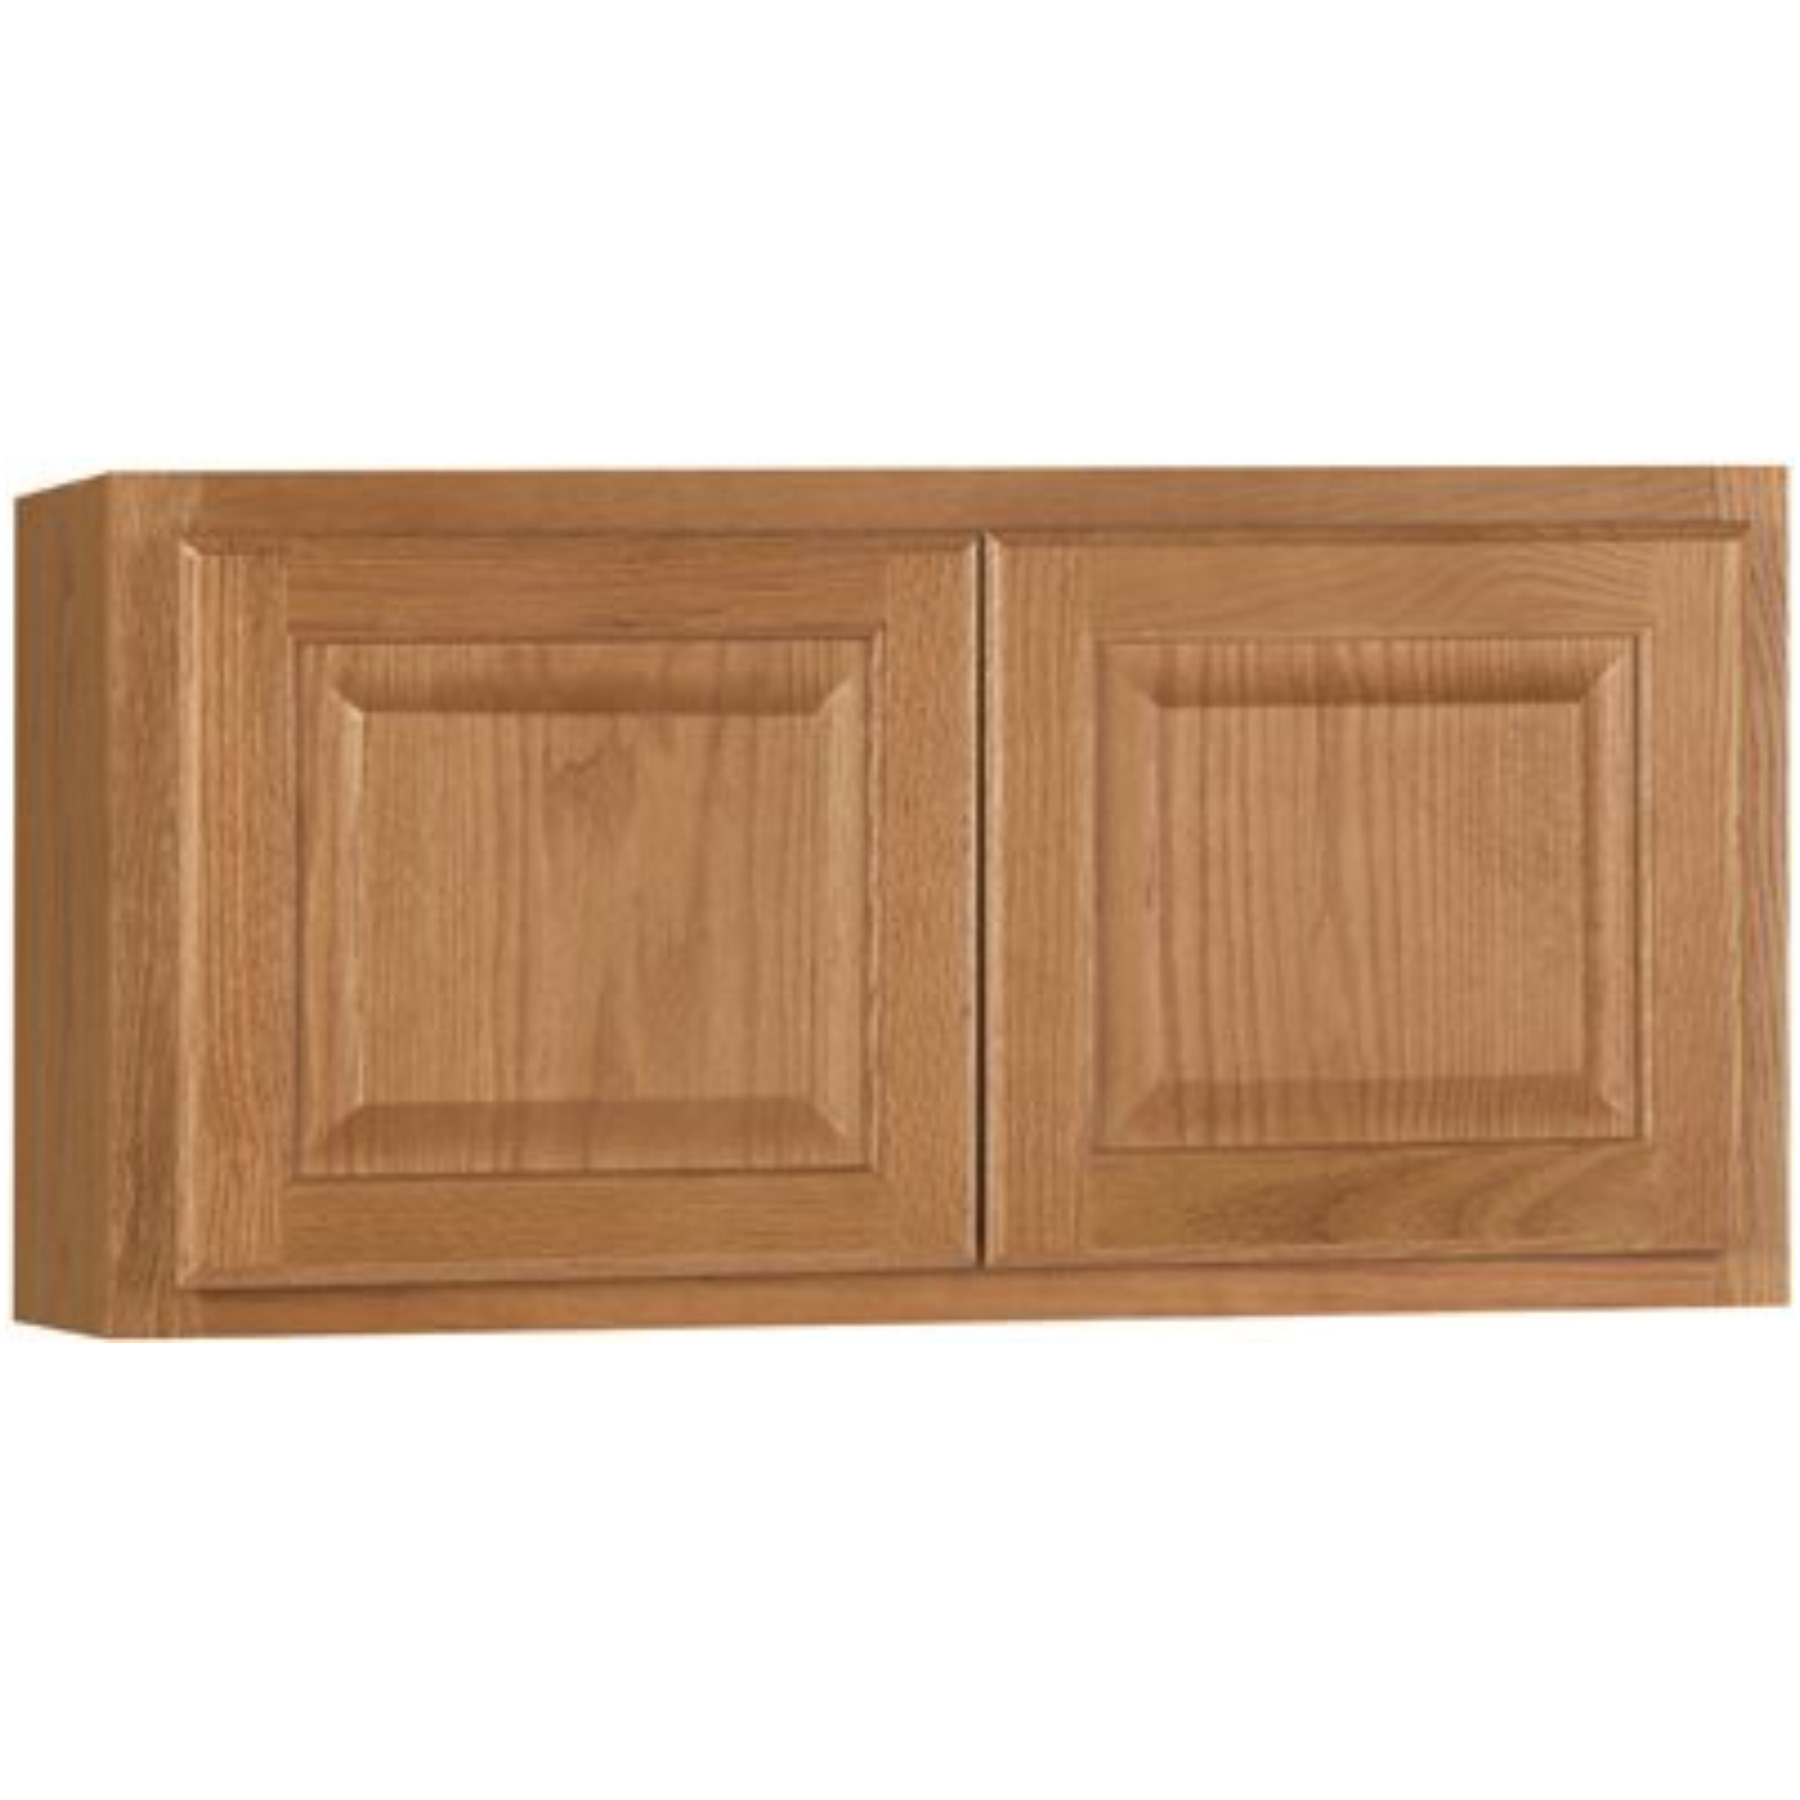 RSI HOME PRODUCTS HAMILTON KITCHEN WALL BRIDGE CABINET, FULLY ASSEMBLED, RAISED PANEL, OAK, 30X12X12 IN.